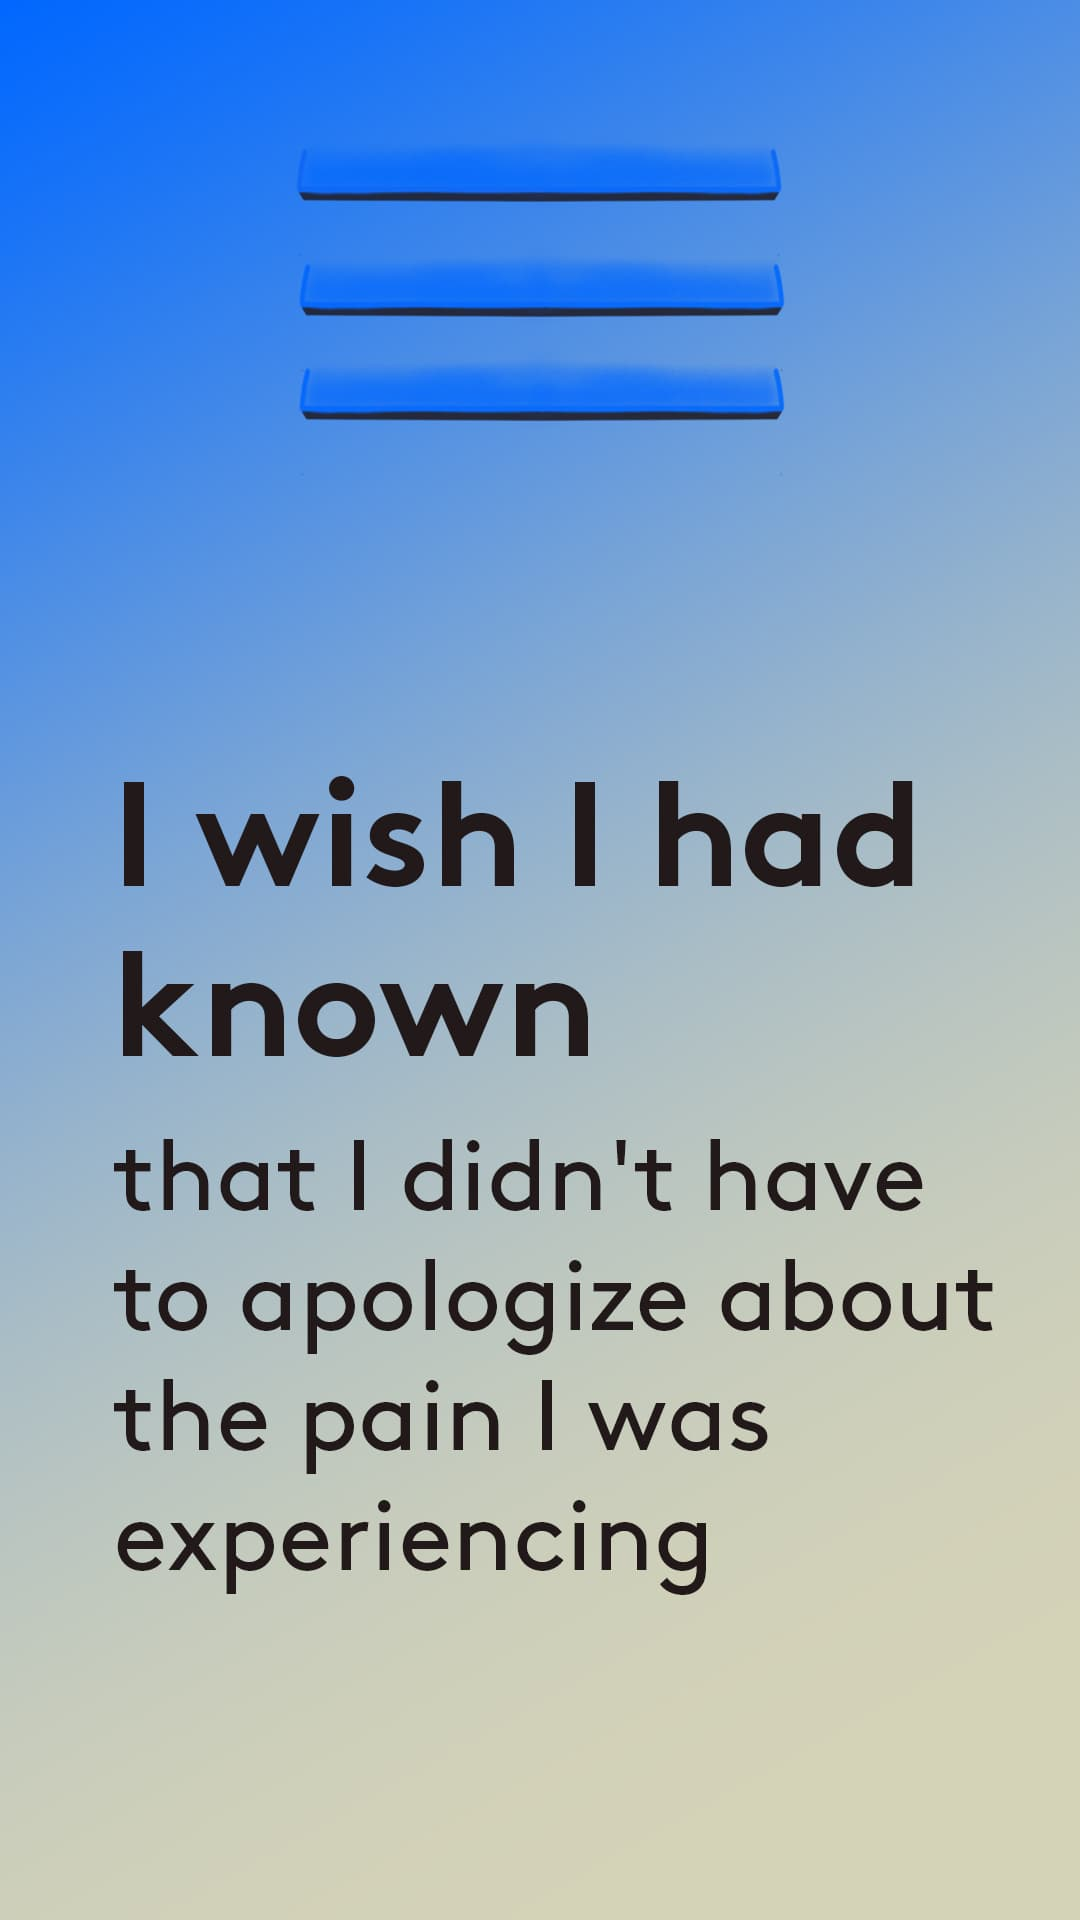 I wish i had known that i didnt have to apologize about the pain i was experiencing